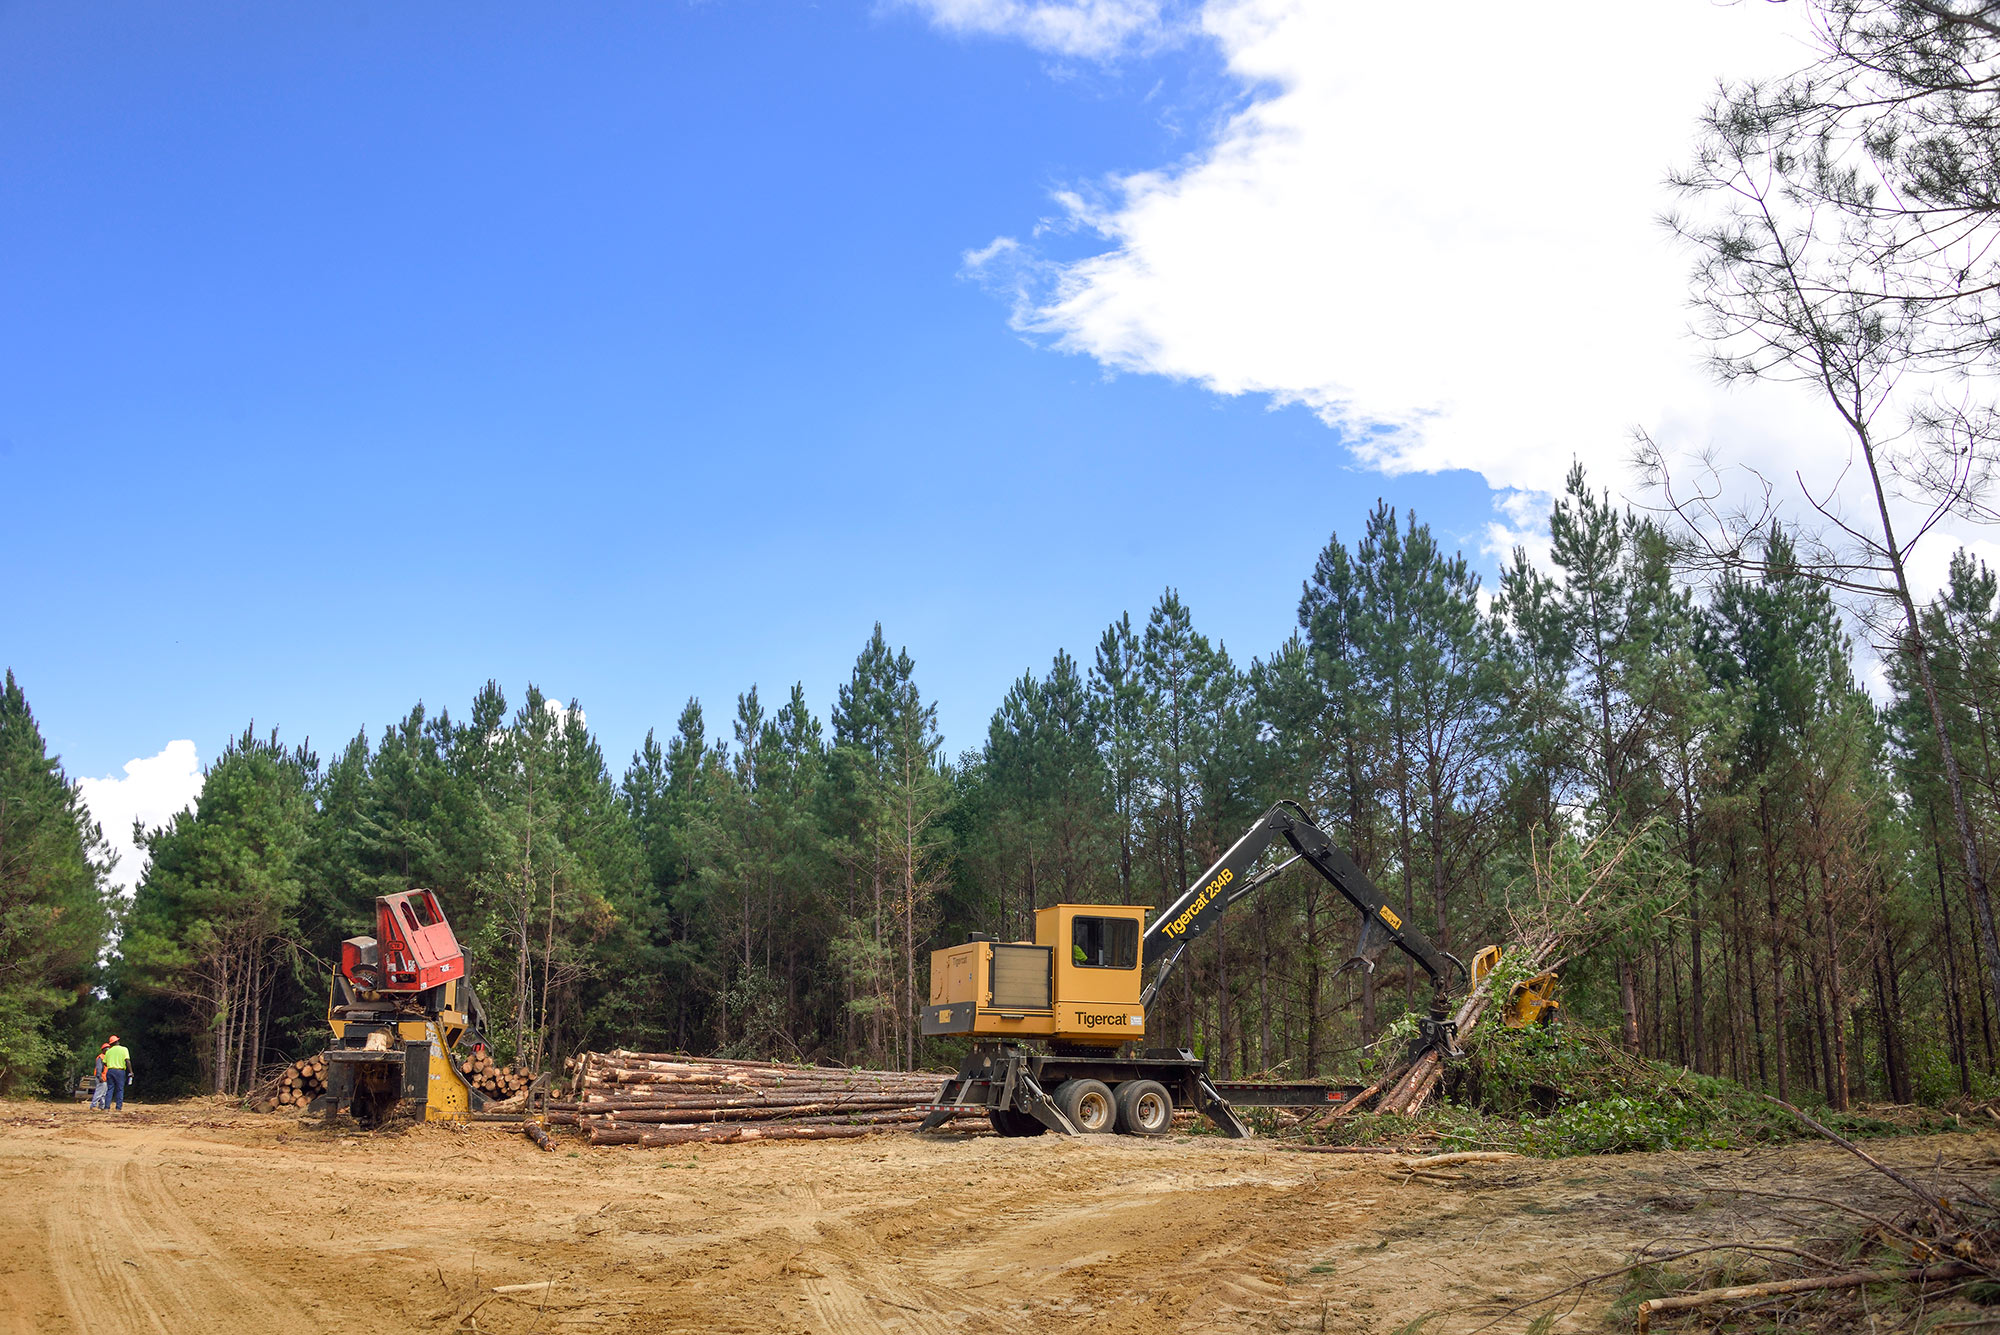 Two yellow logging machines stand in a dirt-covered patch of land. A machine on the right moves the trees, while the machine on the left sits still, waiting to be used.